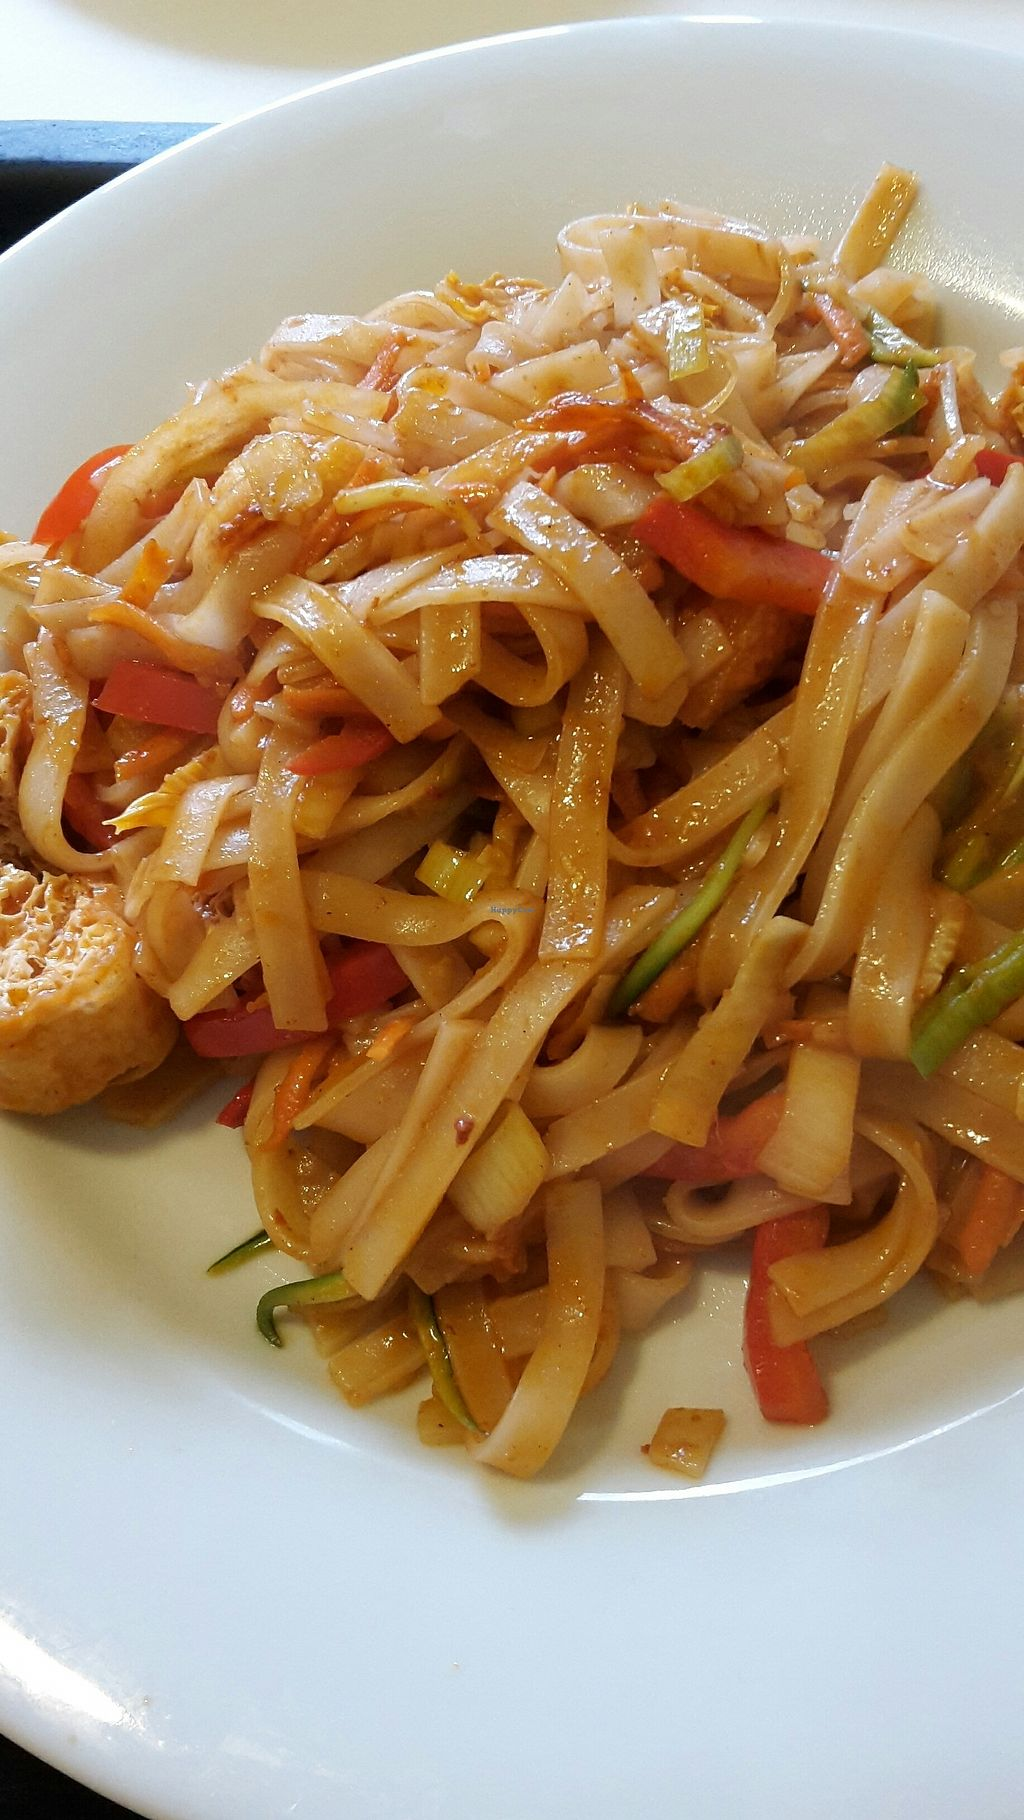 "Photo of Box Thai  by <a href=""/members/profile/vegankiwis"">vegankiwis</a> <br/>rice noodles with red curry sauce- vegan <br/> July 30, 2017  - <a href='/contact/abuse/image/88202/286840'>Report</a>"